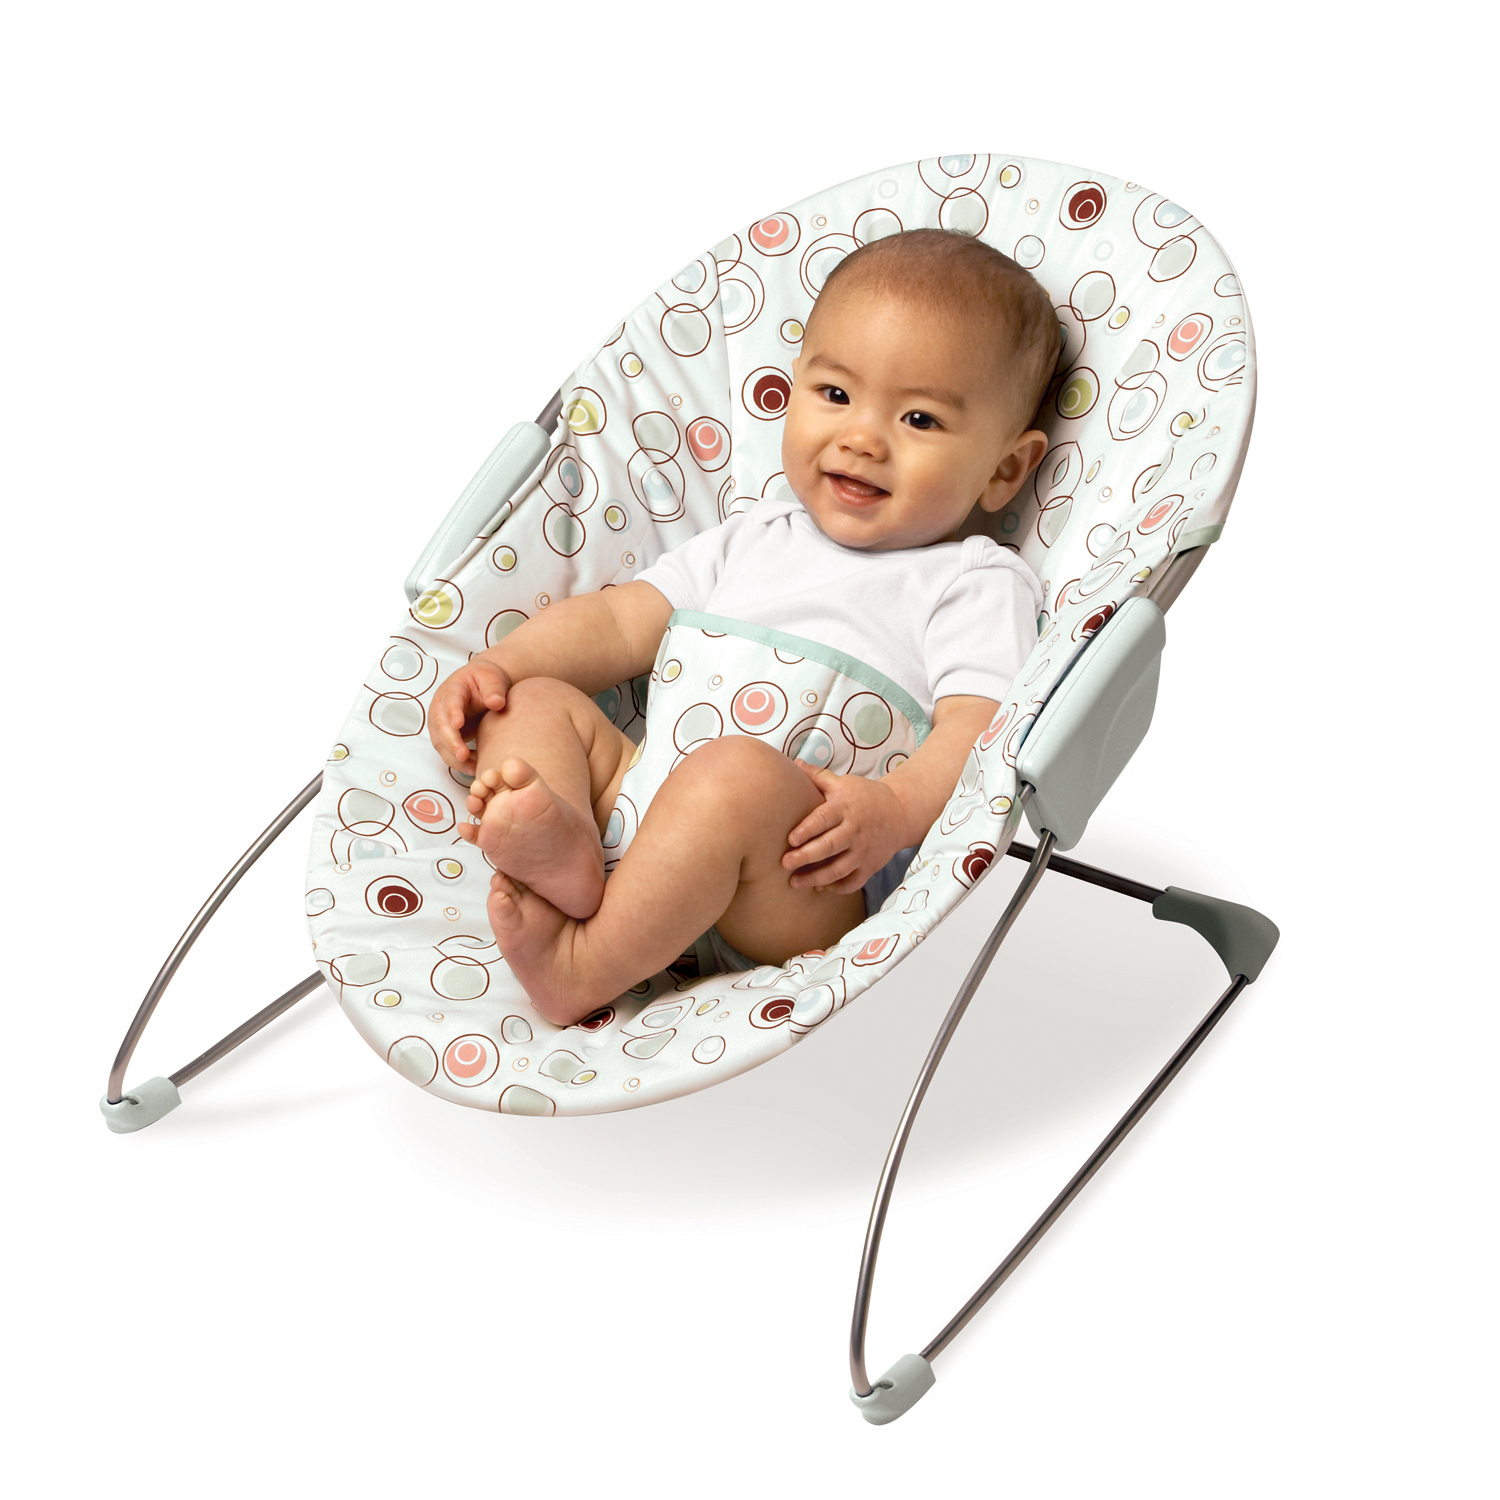 5 Of The Best Bouncy Chairs For Babies on high chair toys baby